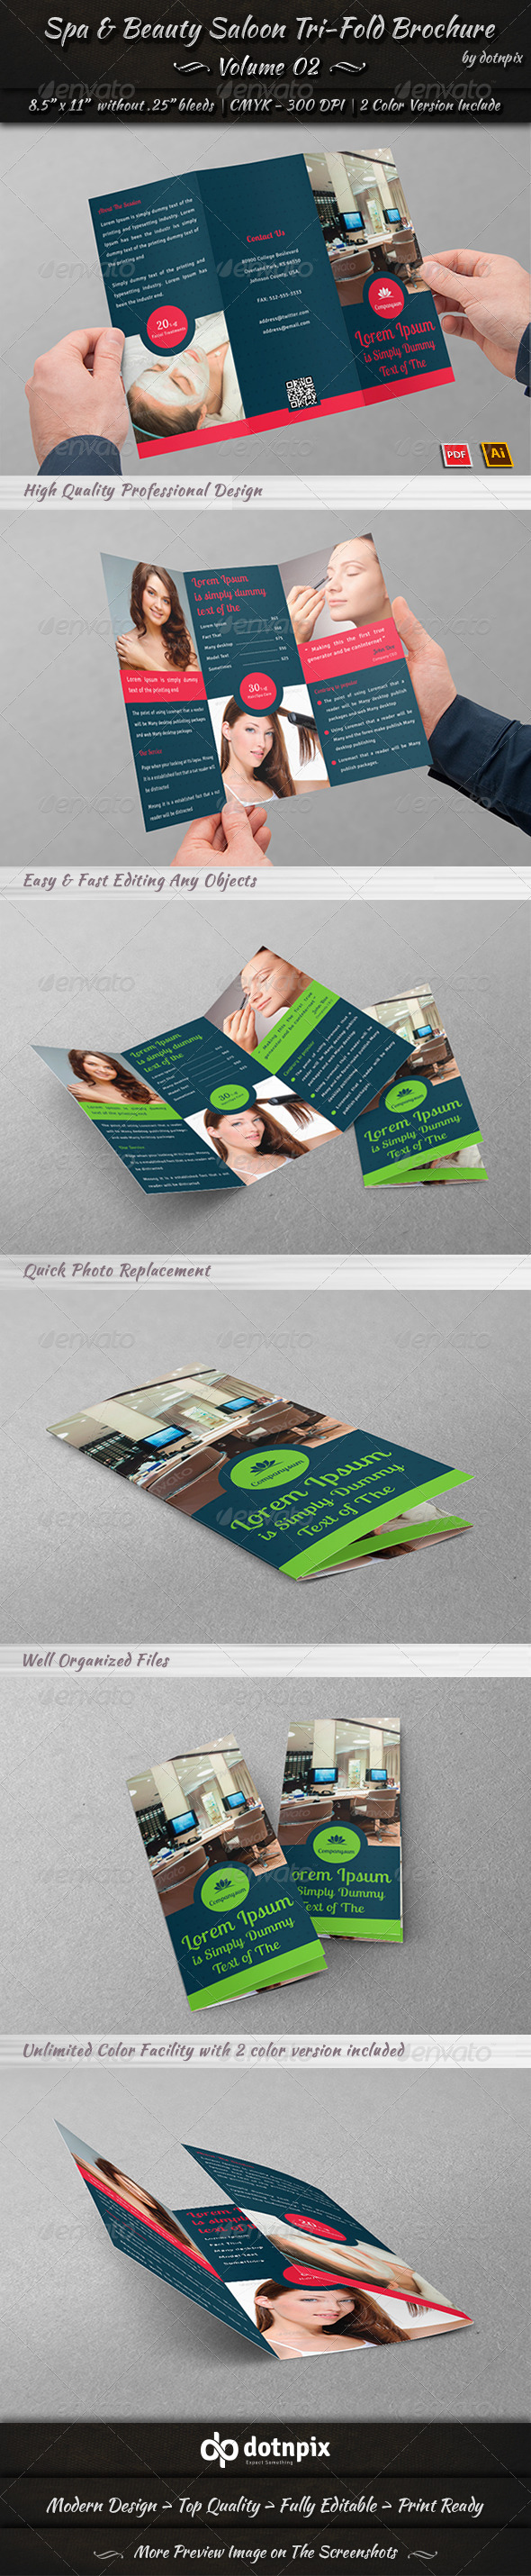 GraphicRiver Spa & Beauty Saloon Tri-Fold Brochure Volume 2 8008907